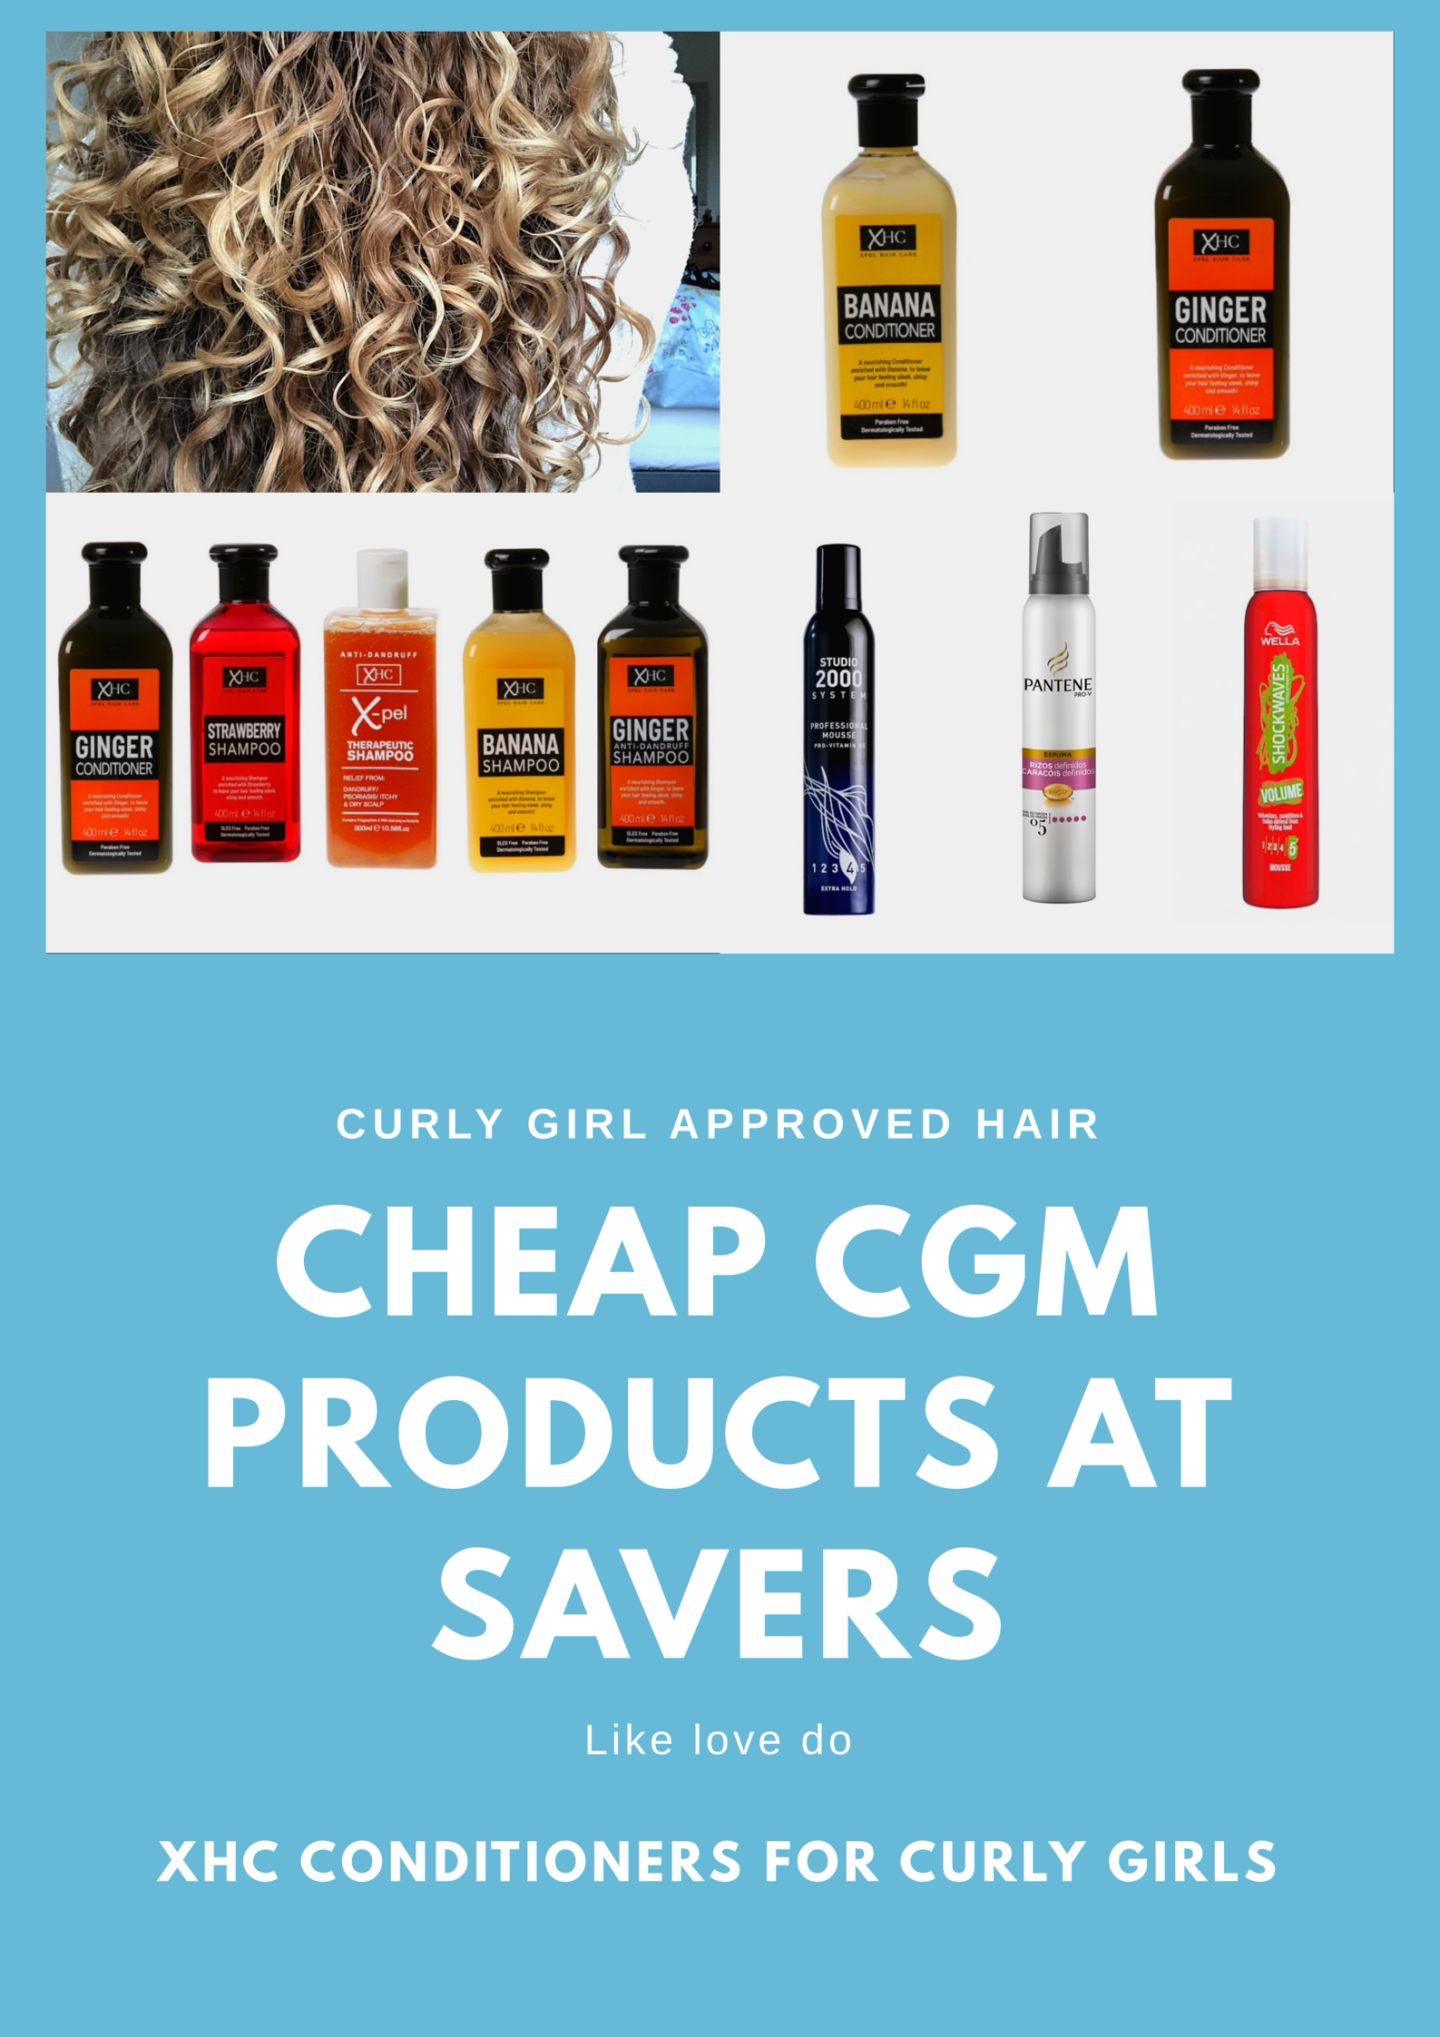 Savers stocks a range of beauty, hair and home products some of which are curly girl safe. Curly Girl Method Products in Savers can be seen in this post.Savers is a shop based in the UK with over450 shops and an online that stocks cheap cgm products.